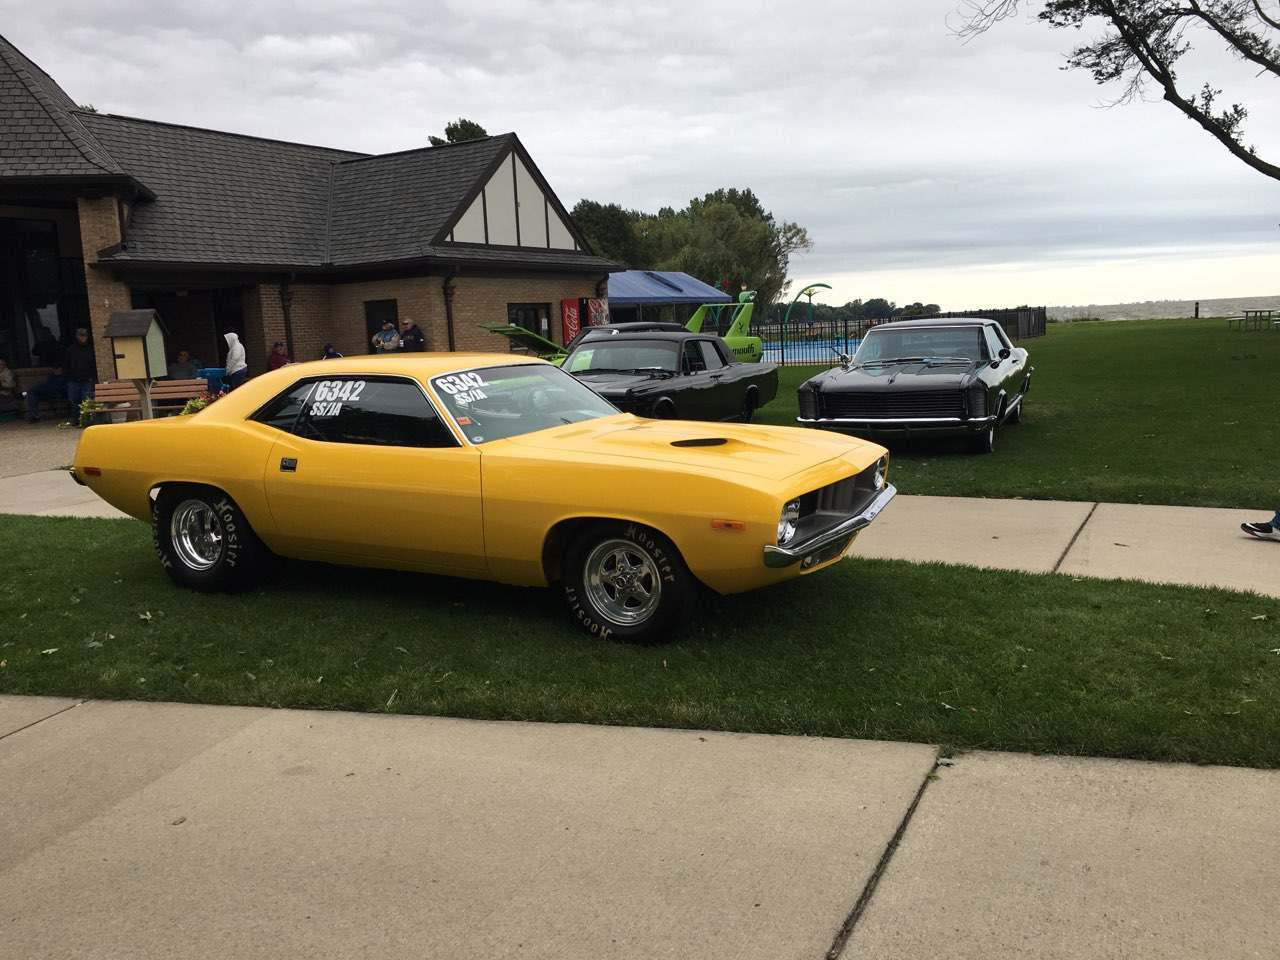 GPS 2018 cuda facing lake.jpg